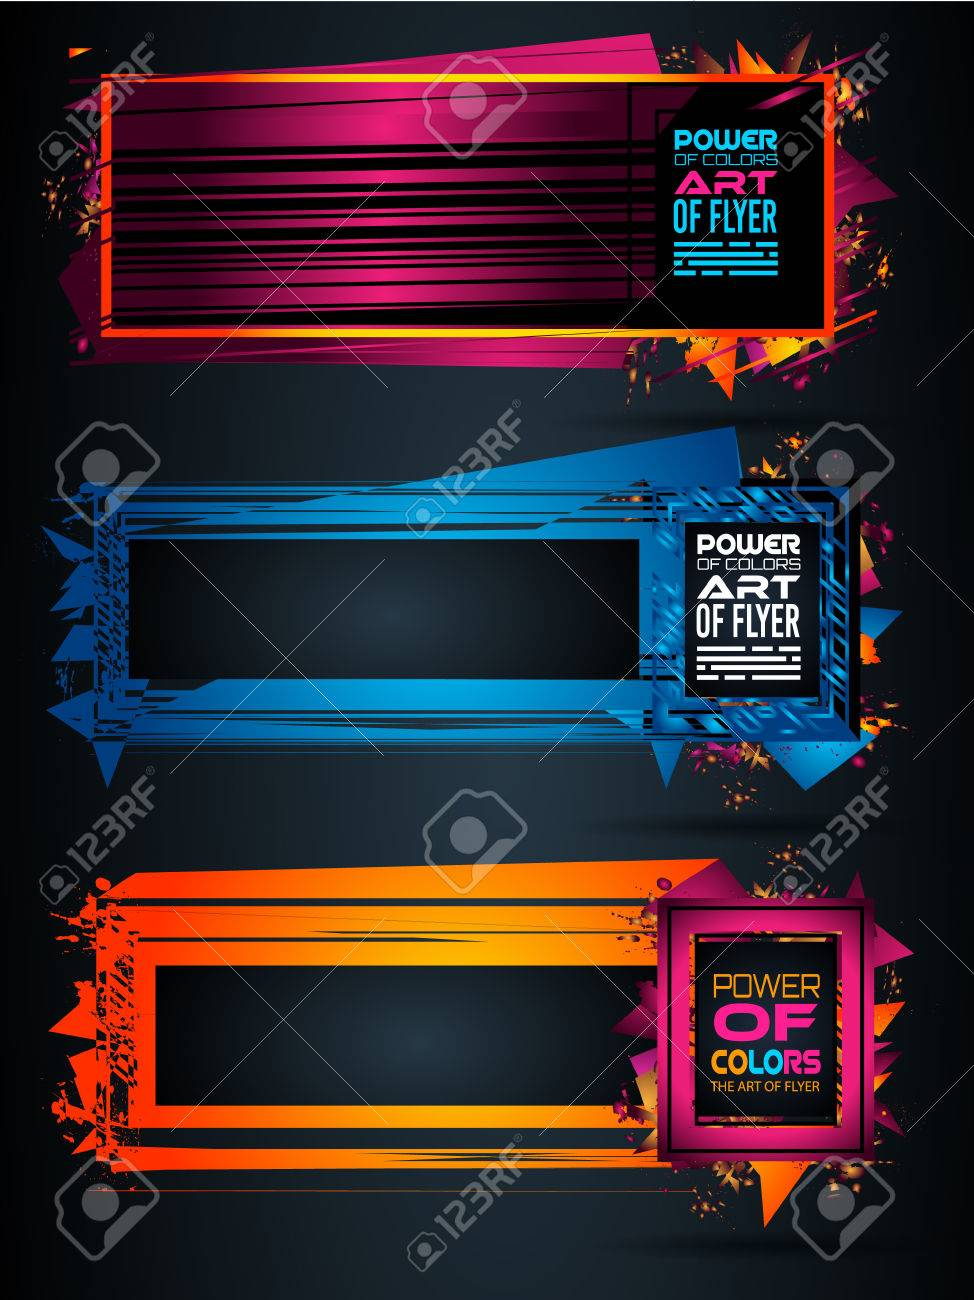 futuristic frame art design with abstract shapes and drops of royalty free cliparts vectors and stock illustration image 81886882 futuristic frame art design with abstract shapes and drops of royalty free cliparts vectors and stock illustration image 81886882